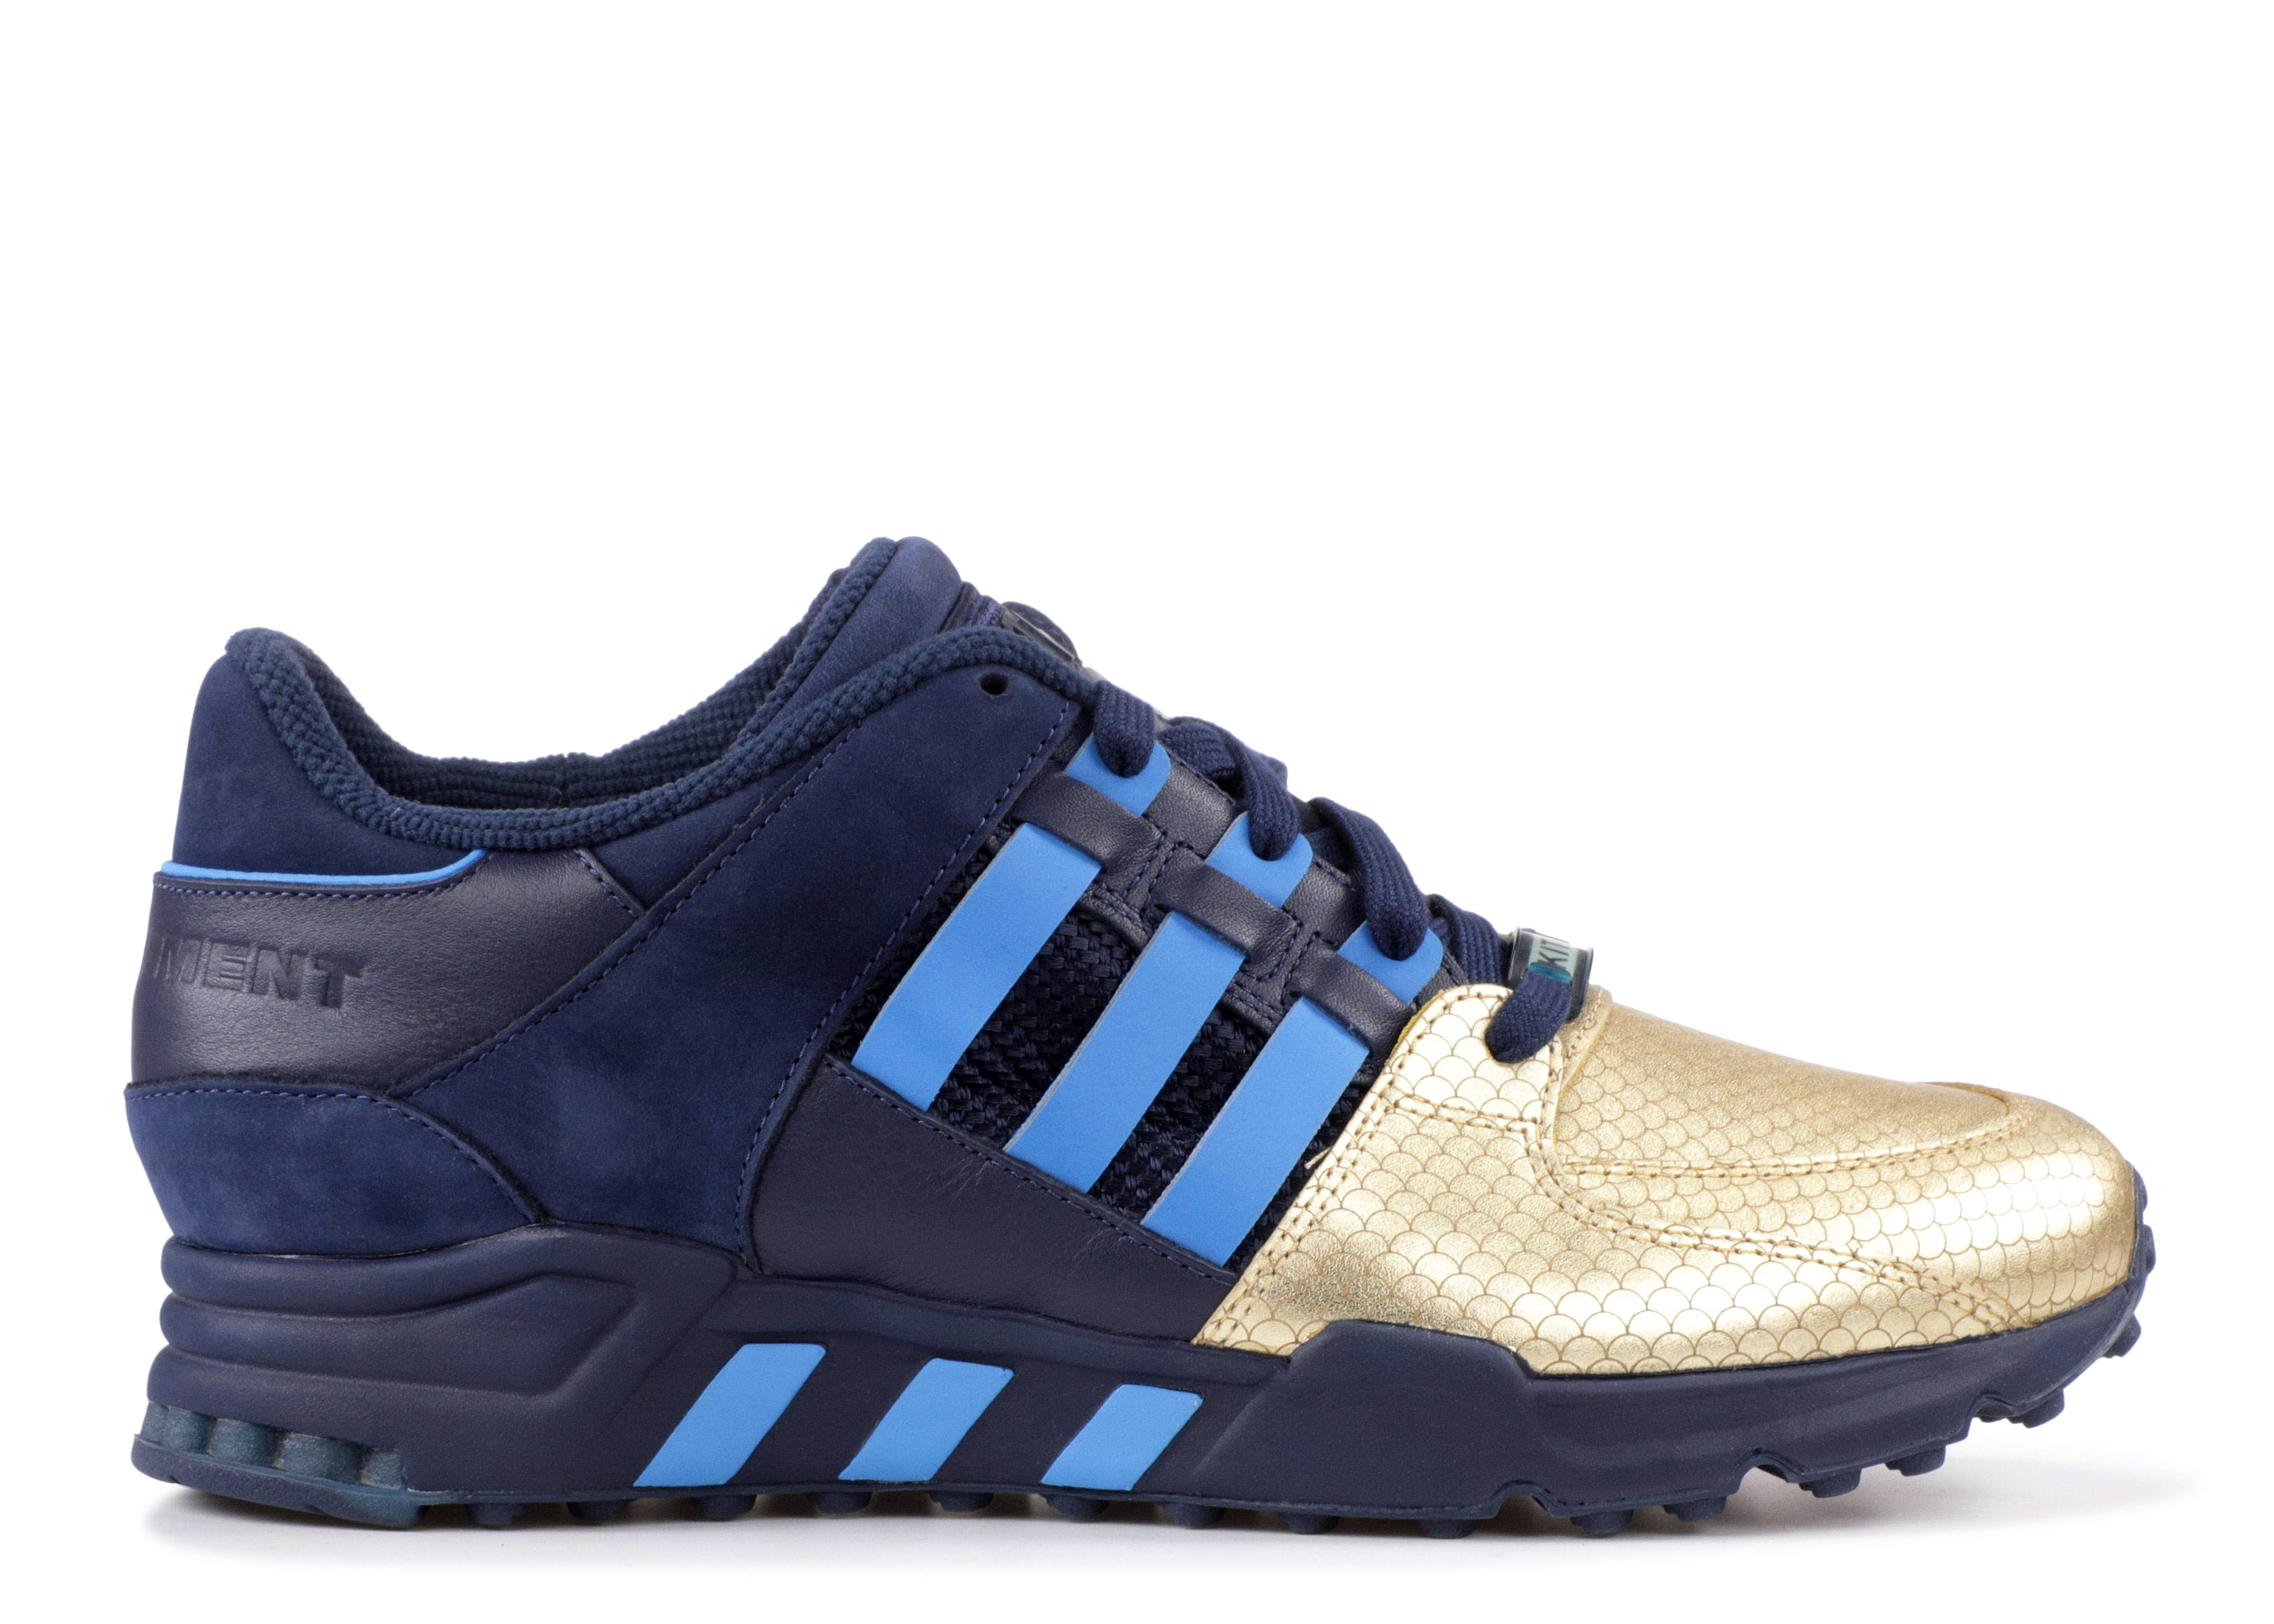 new style 9a7ba 46be3 adidas. eqt rng support 93 - kith